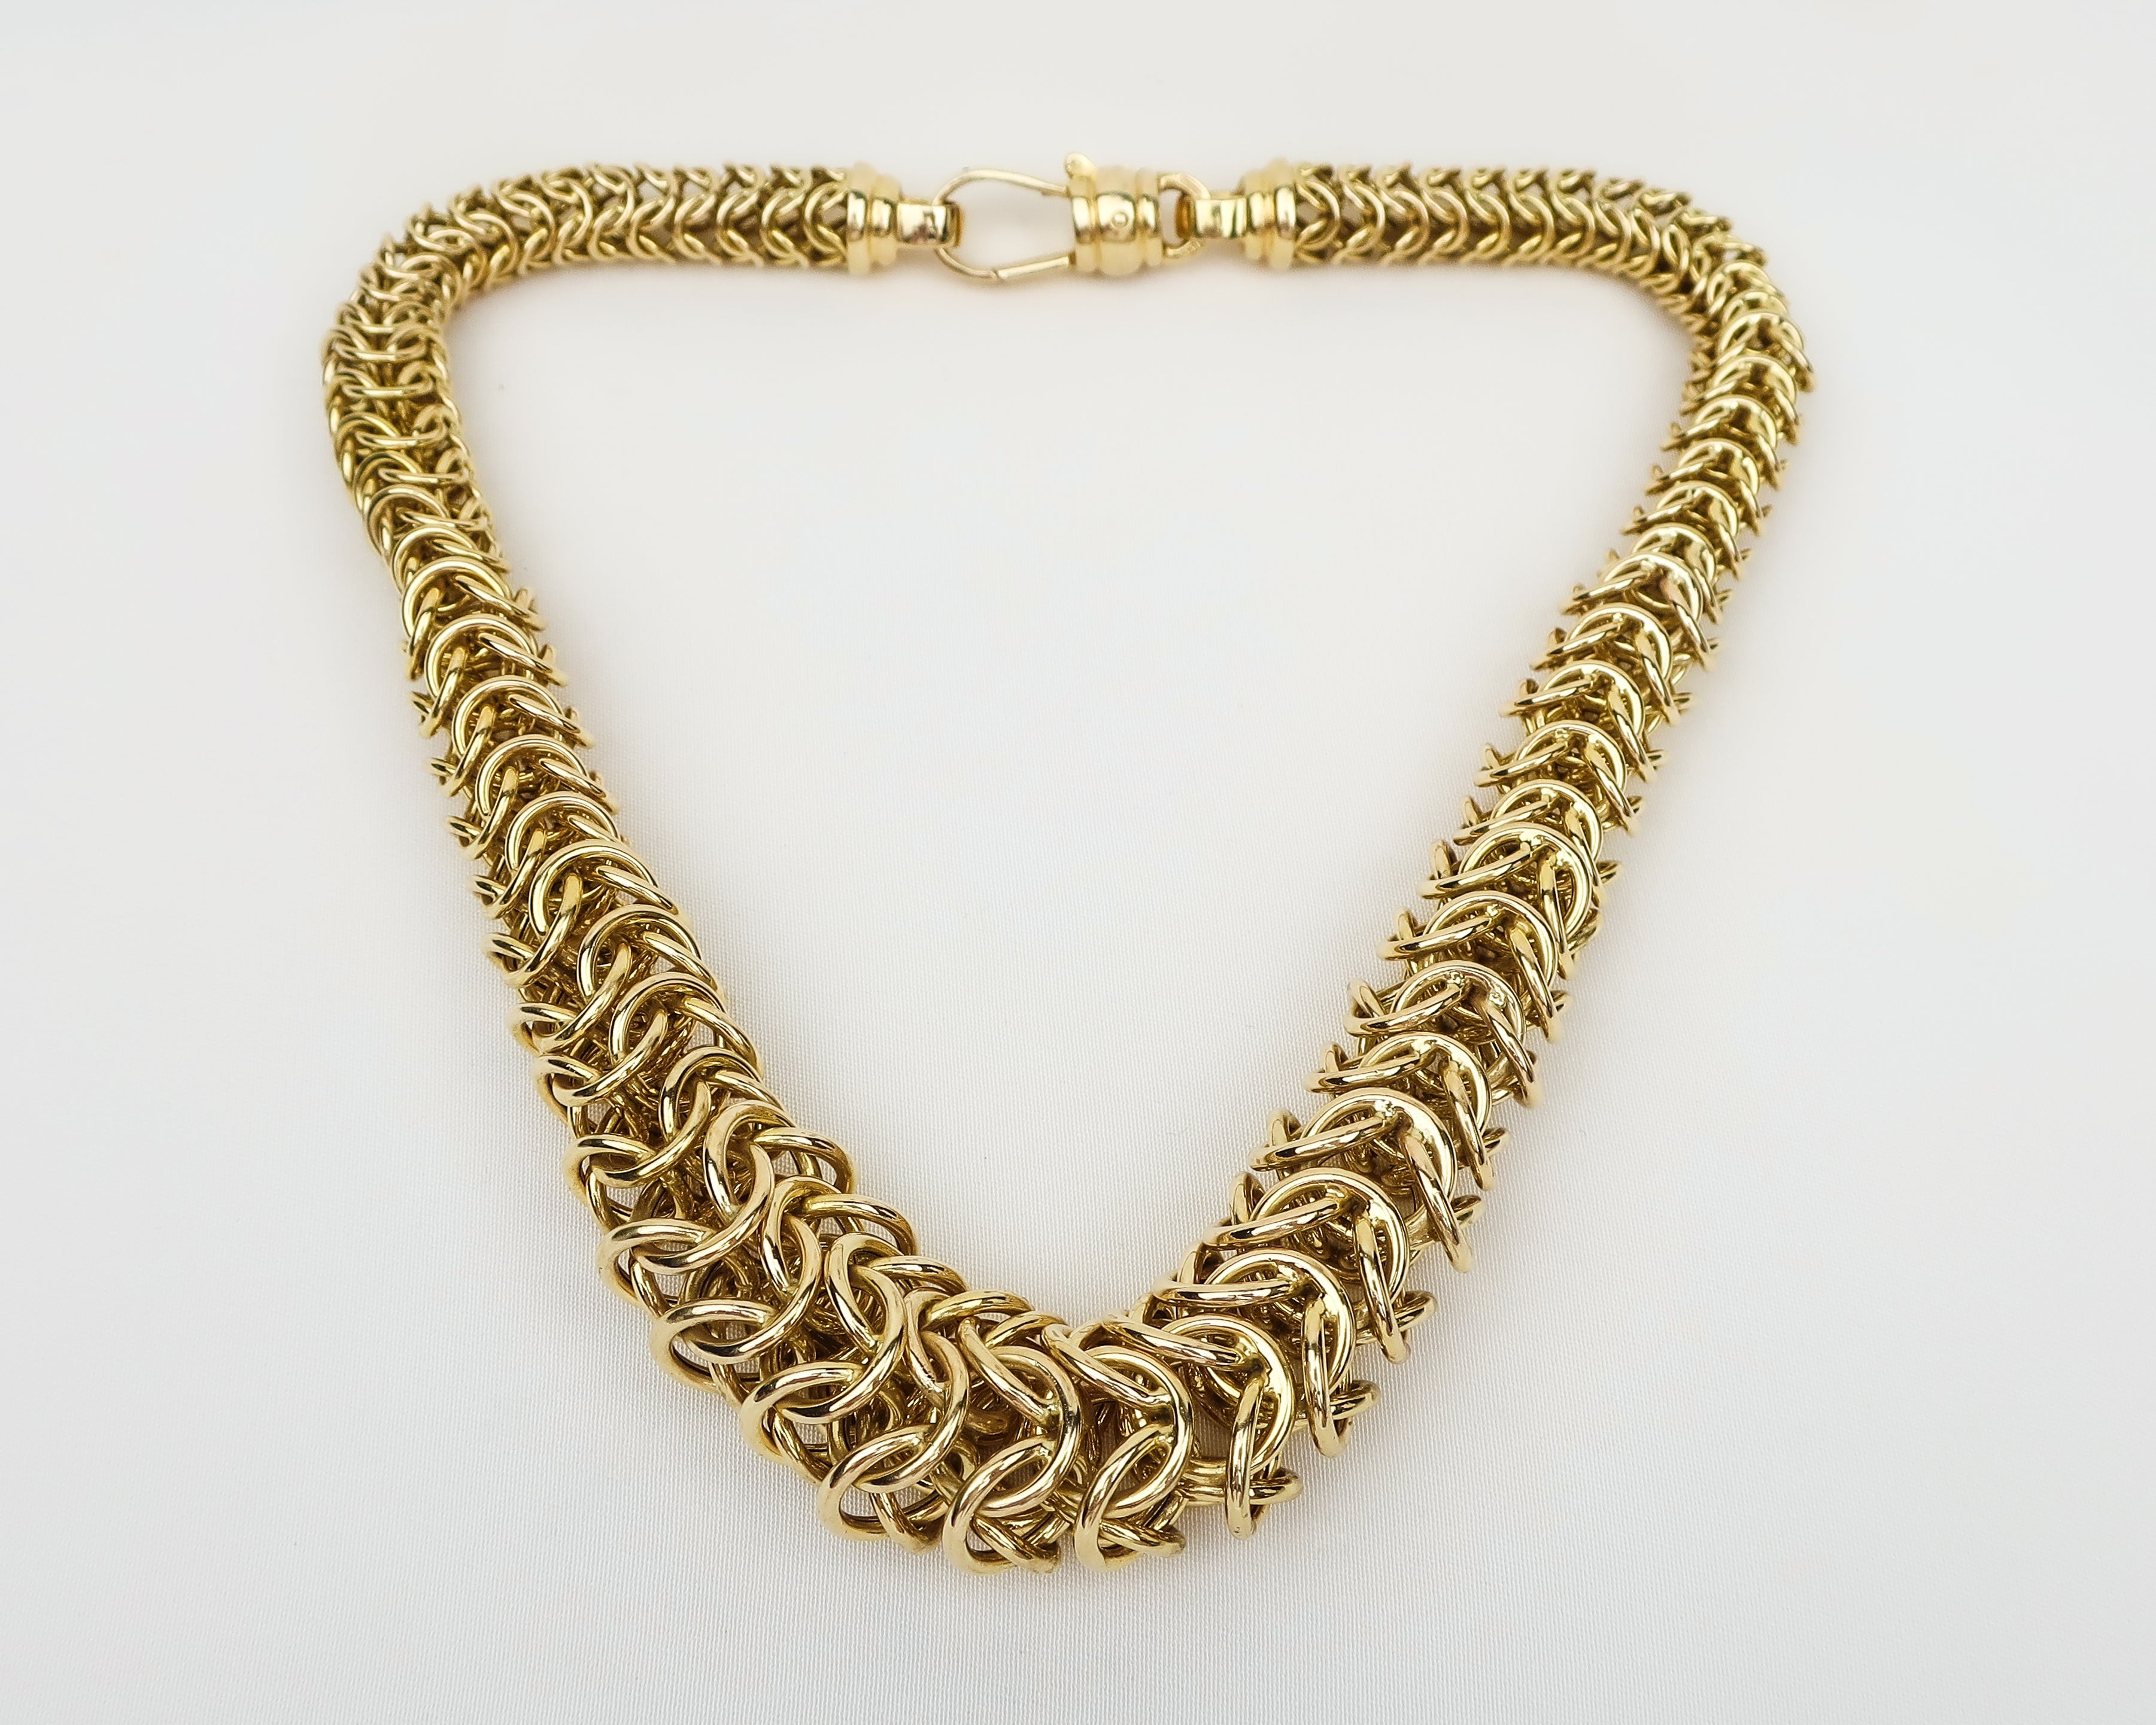 Midcentury 3D Graduated Link Necklace